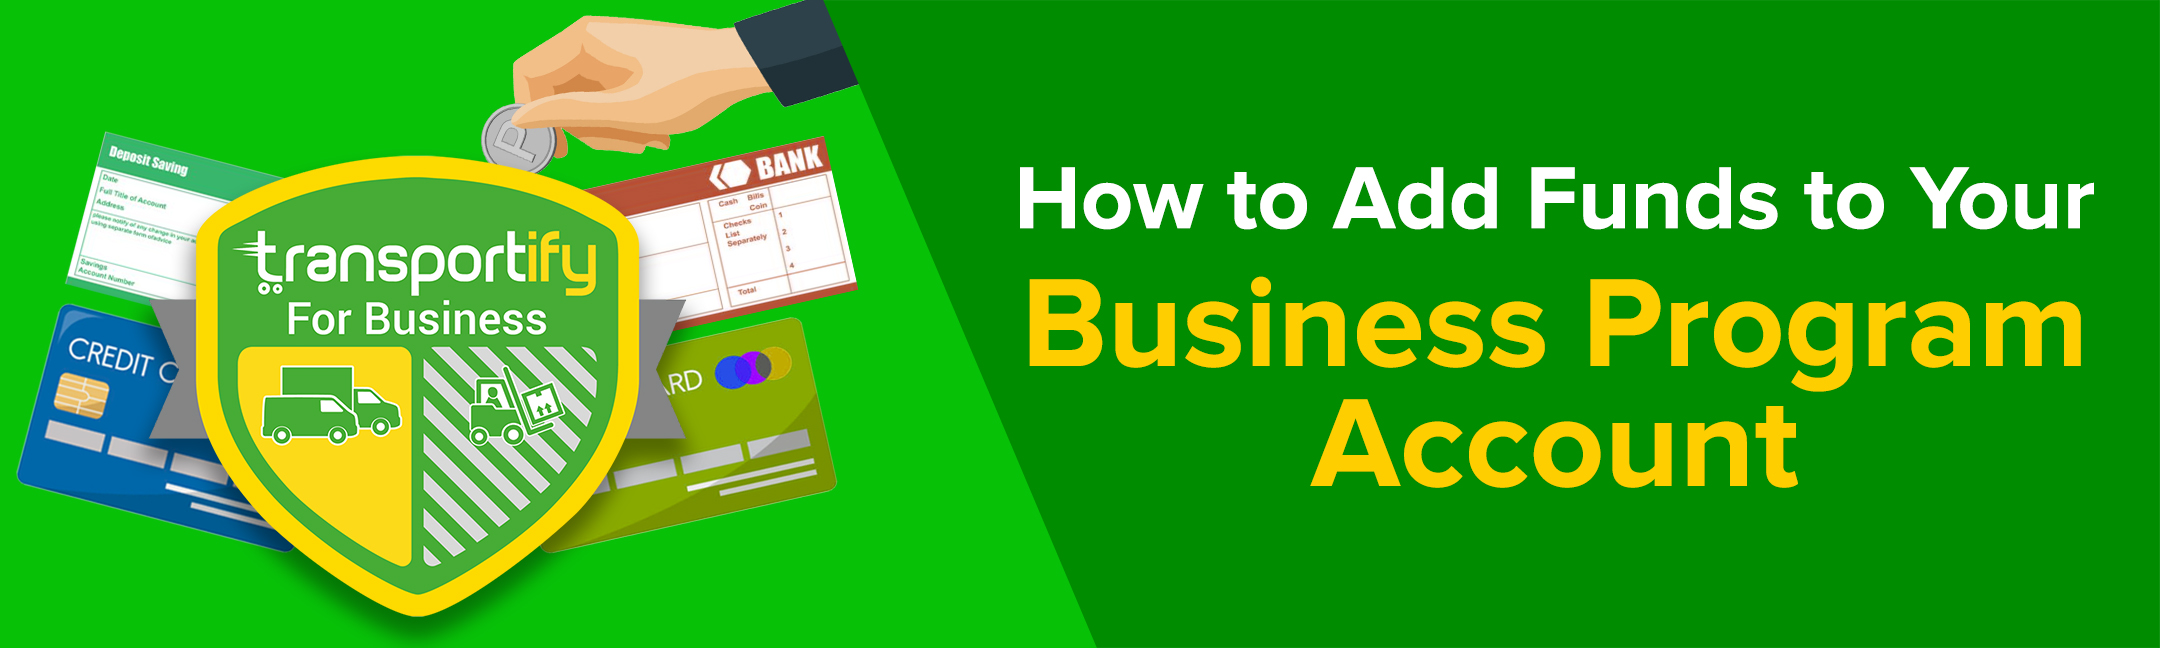 How to Add Funds to Your Business Program Account